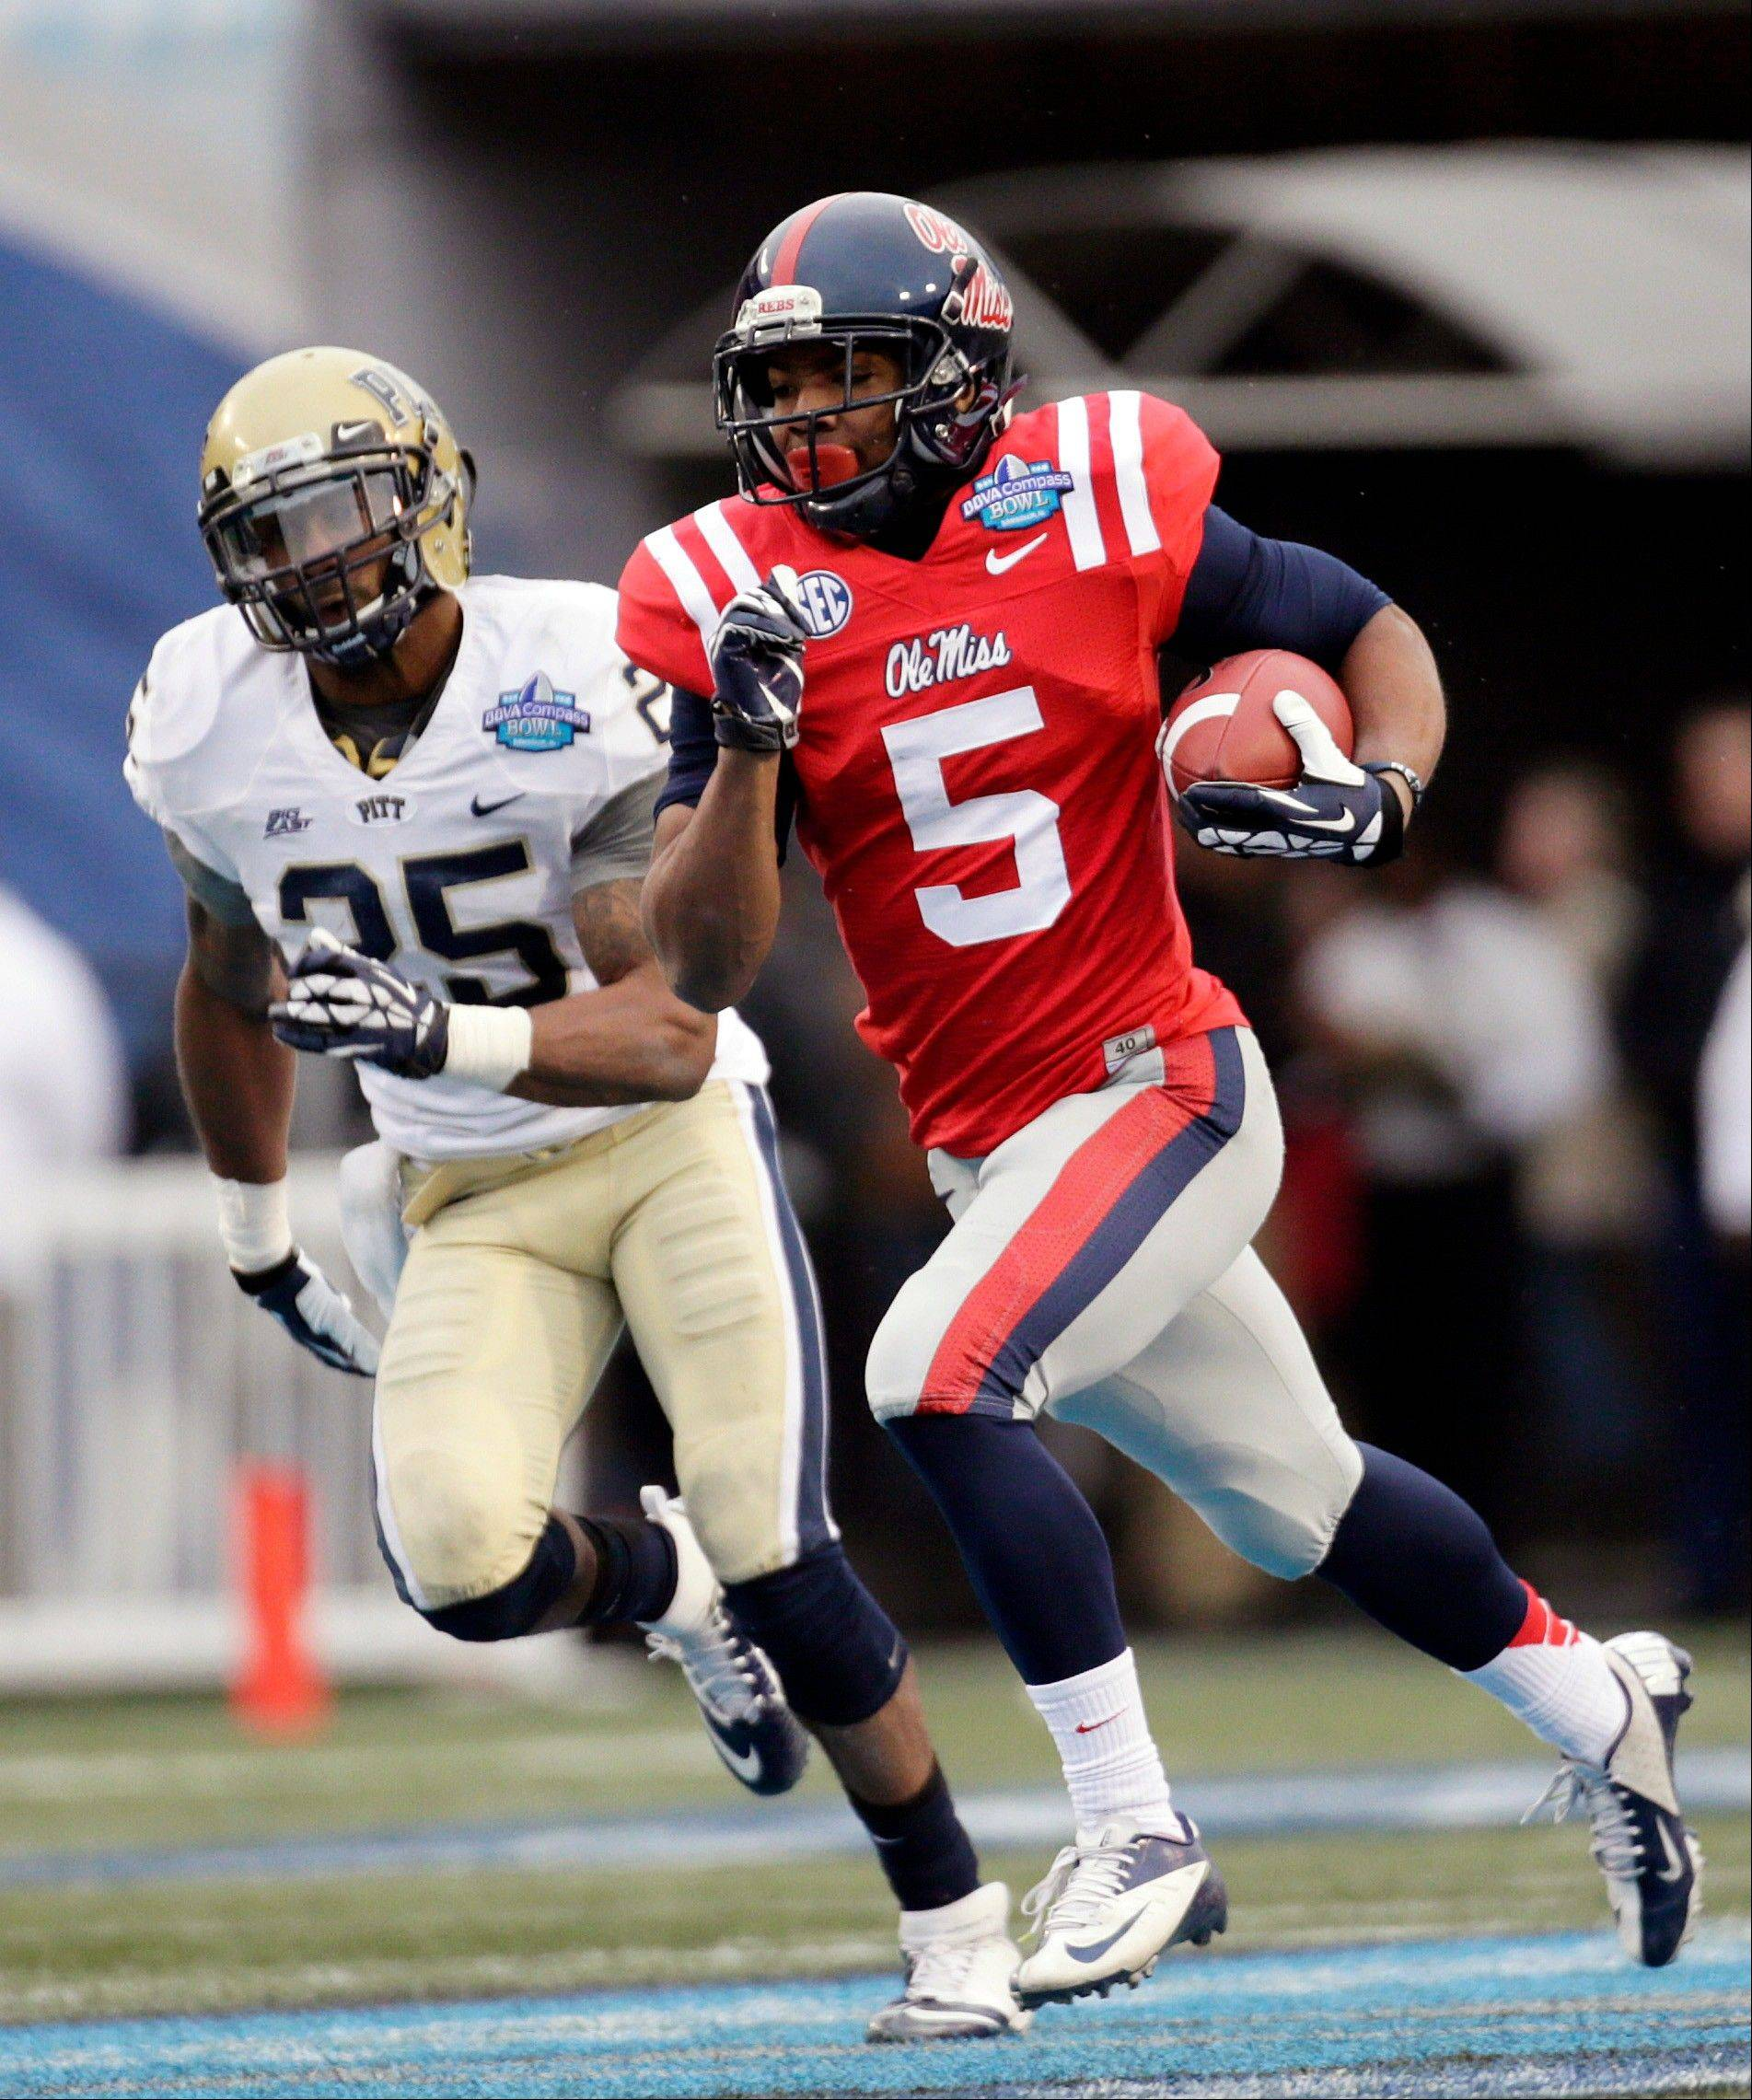 Mississippi running back I'Tavius Mathers (5) rushes for a 62-yard touchdown as Pittsburgh defensive back Jason Hendricks (25) trails in the second half of the BBVA Compass Bowl NCAA college football game at Legion Field in Birmingham, Ala., Saturday, Jan. 5, 2013. Mississippi won 38-17.